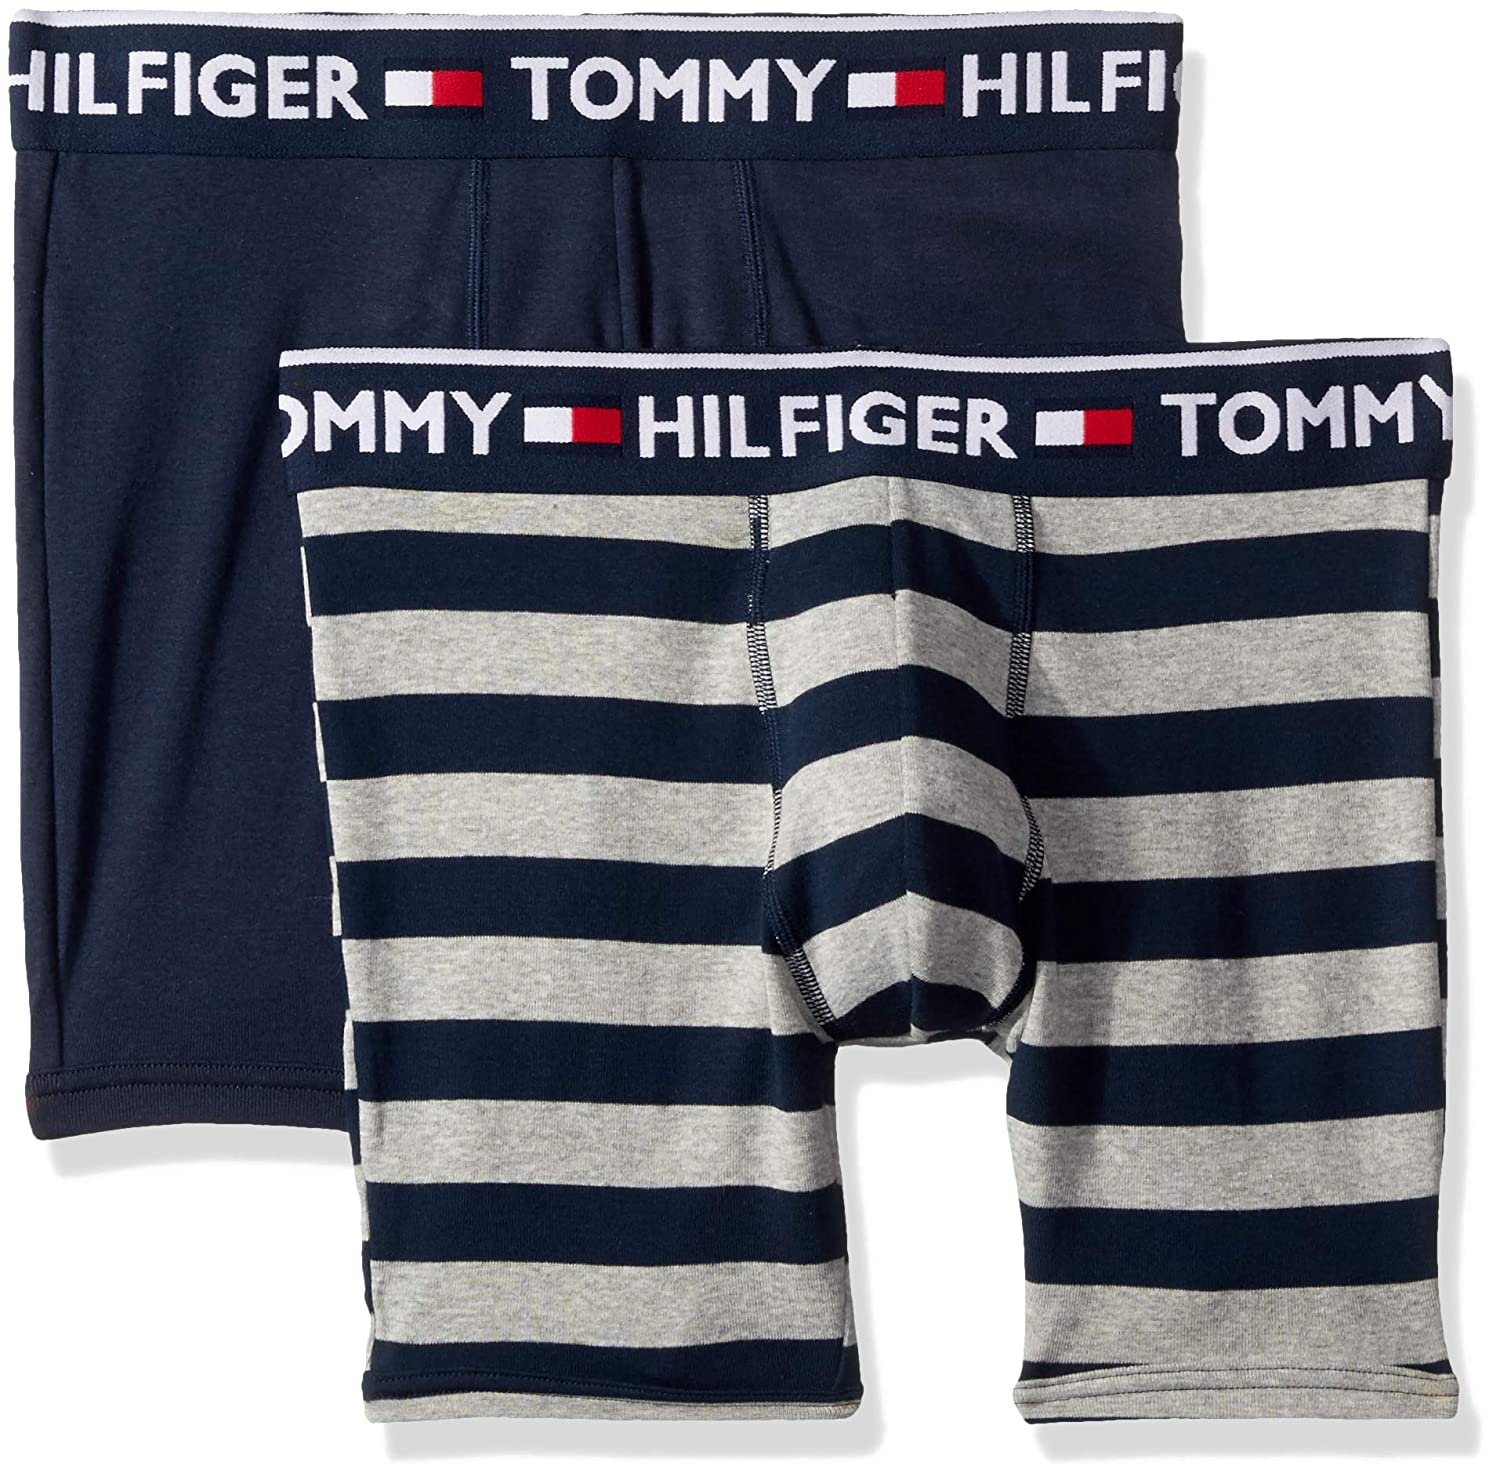 776b75a54dc55 Tommy Hilfiger Men s Underwear 2 Pack Bold Cotton Boxer Briefs at Amazon  Men s Clothing store